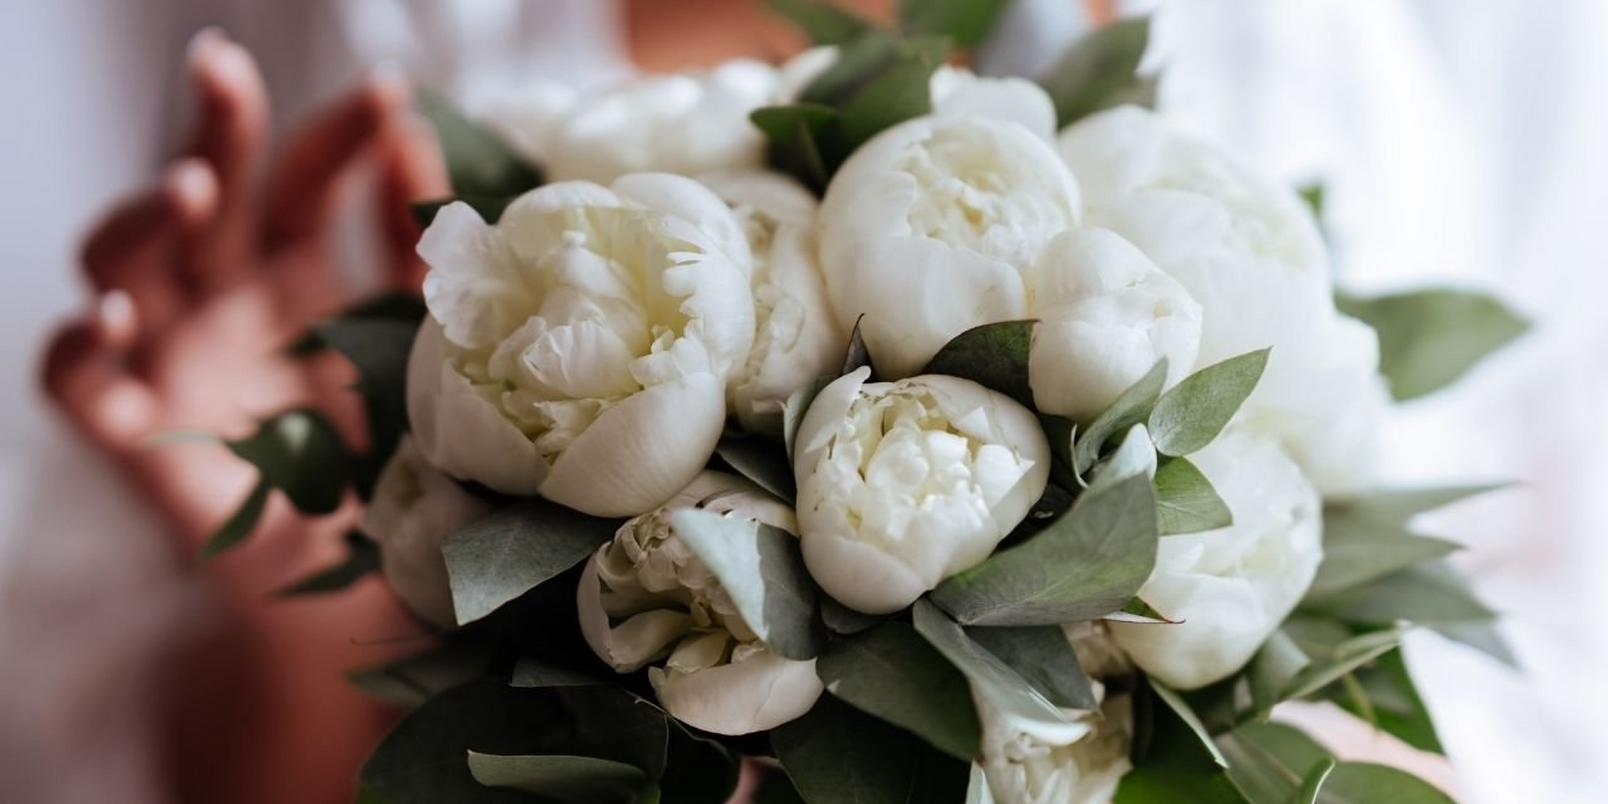 peonies-facts-that-may-surprise-you-2